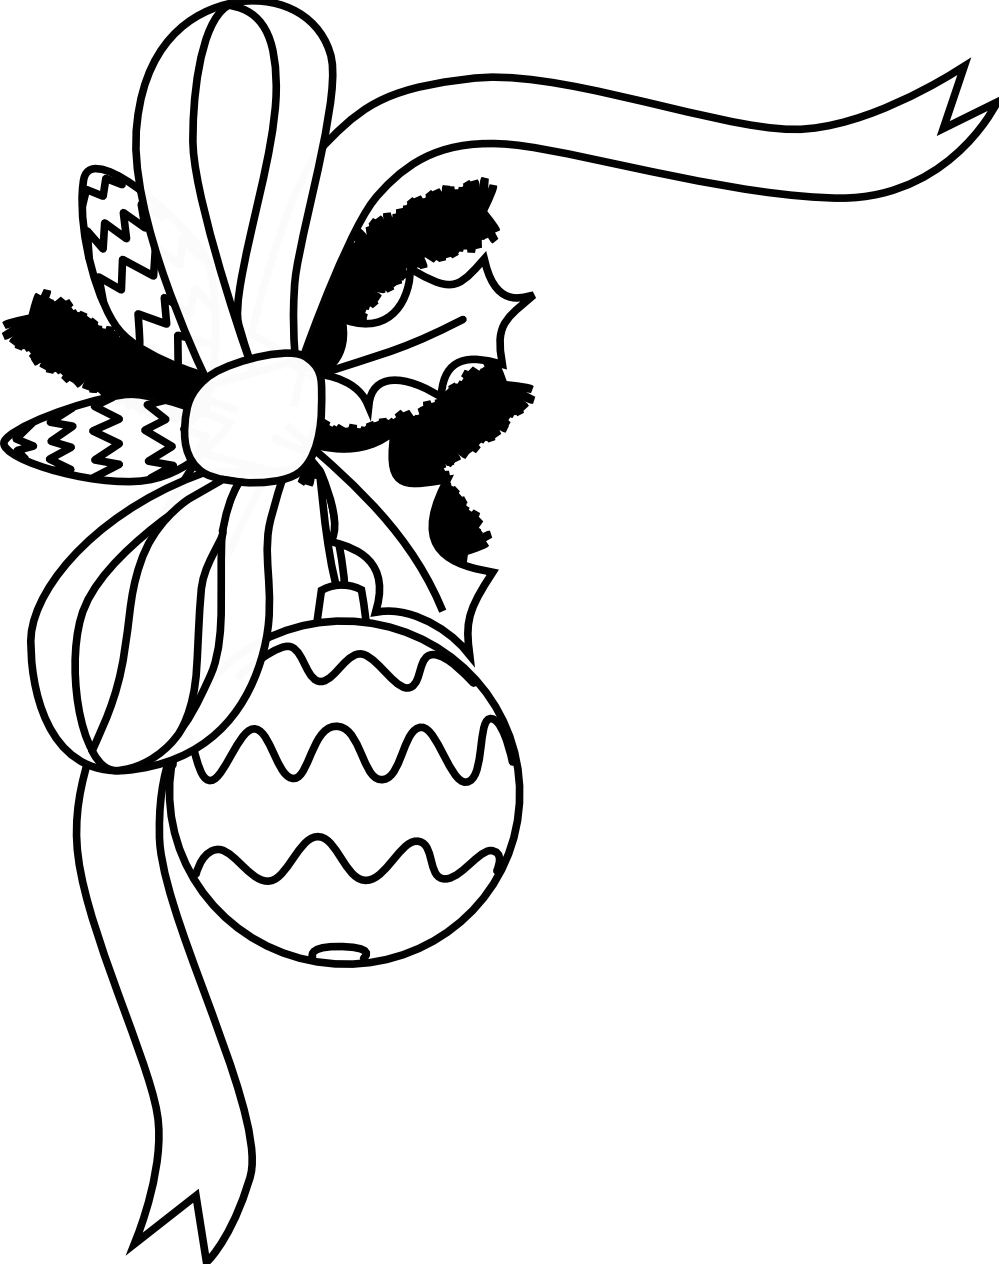 Decoration clipart black and white And Black  Clipart White